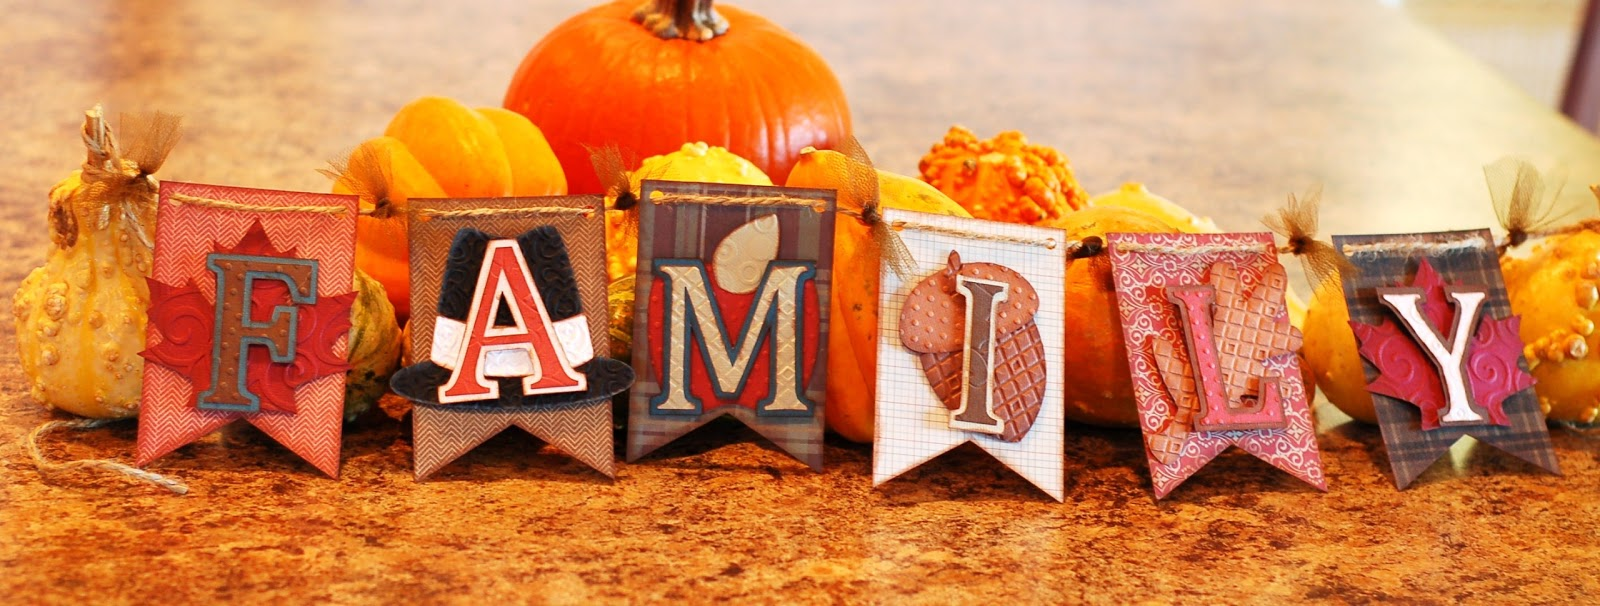 Paper Creations by Kristin: FAMILY Thanksgiving banner